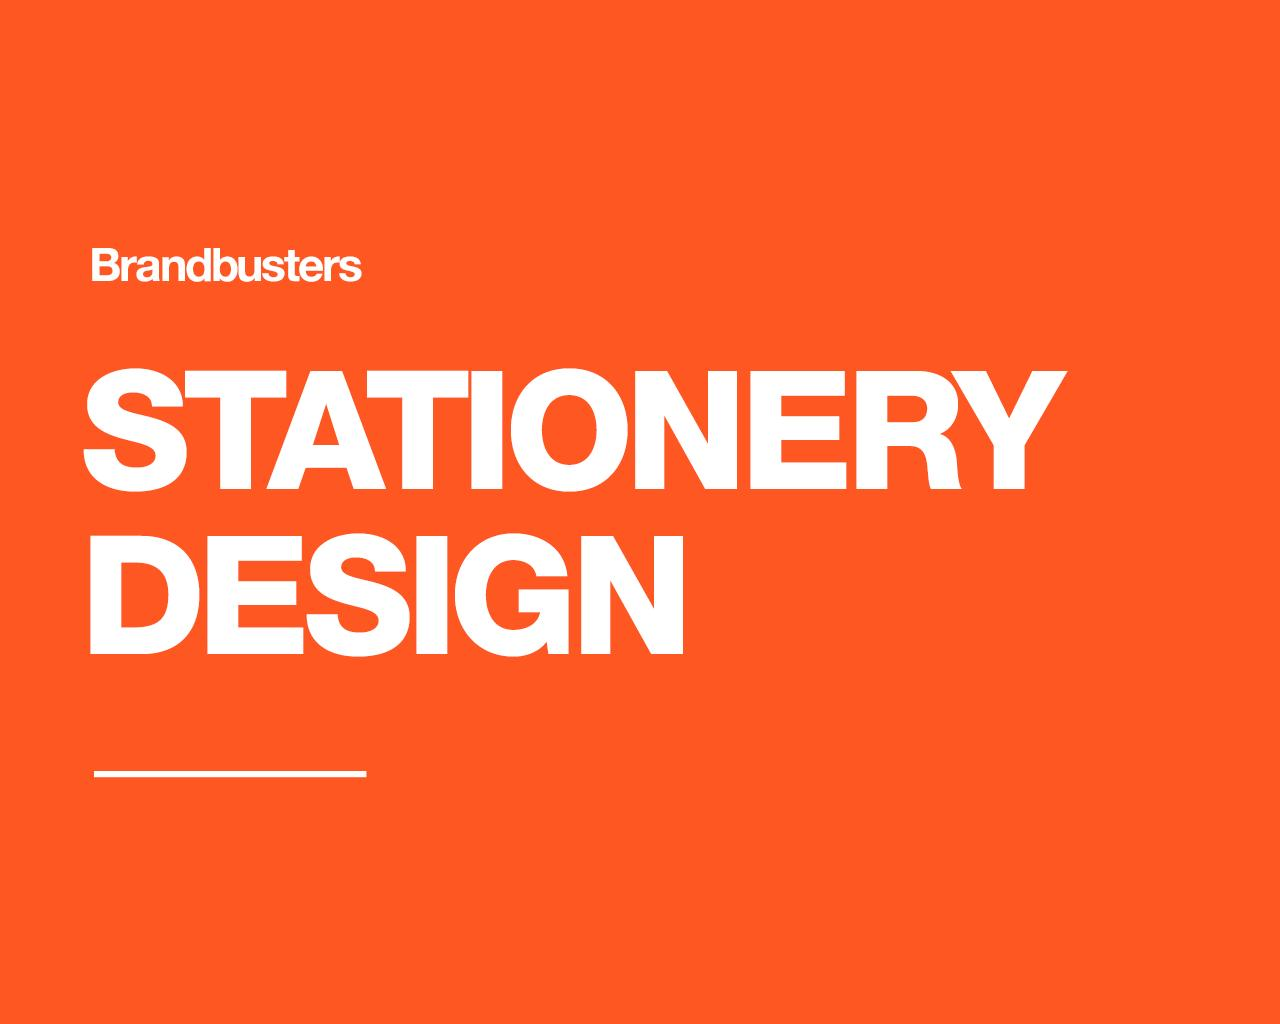 Professional Stationery Design by Brandbusters - 110650